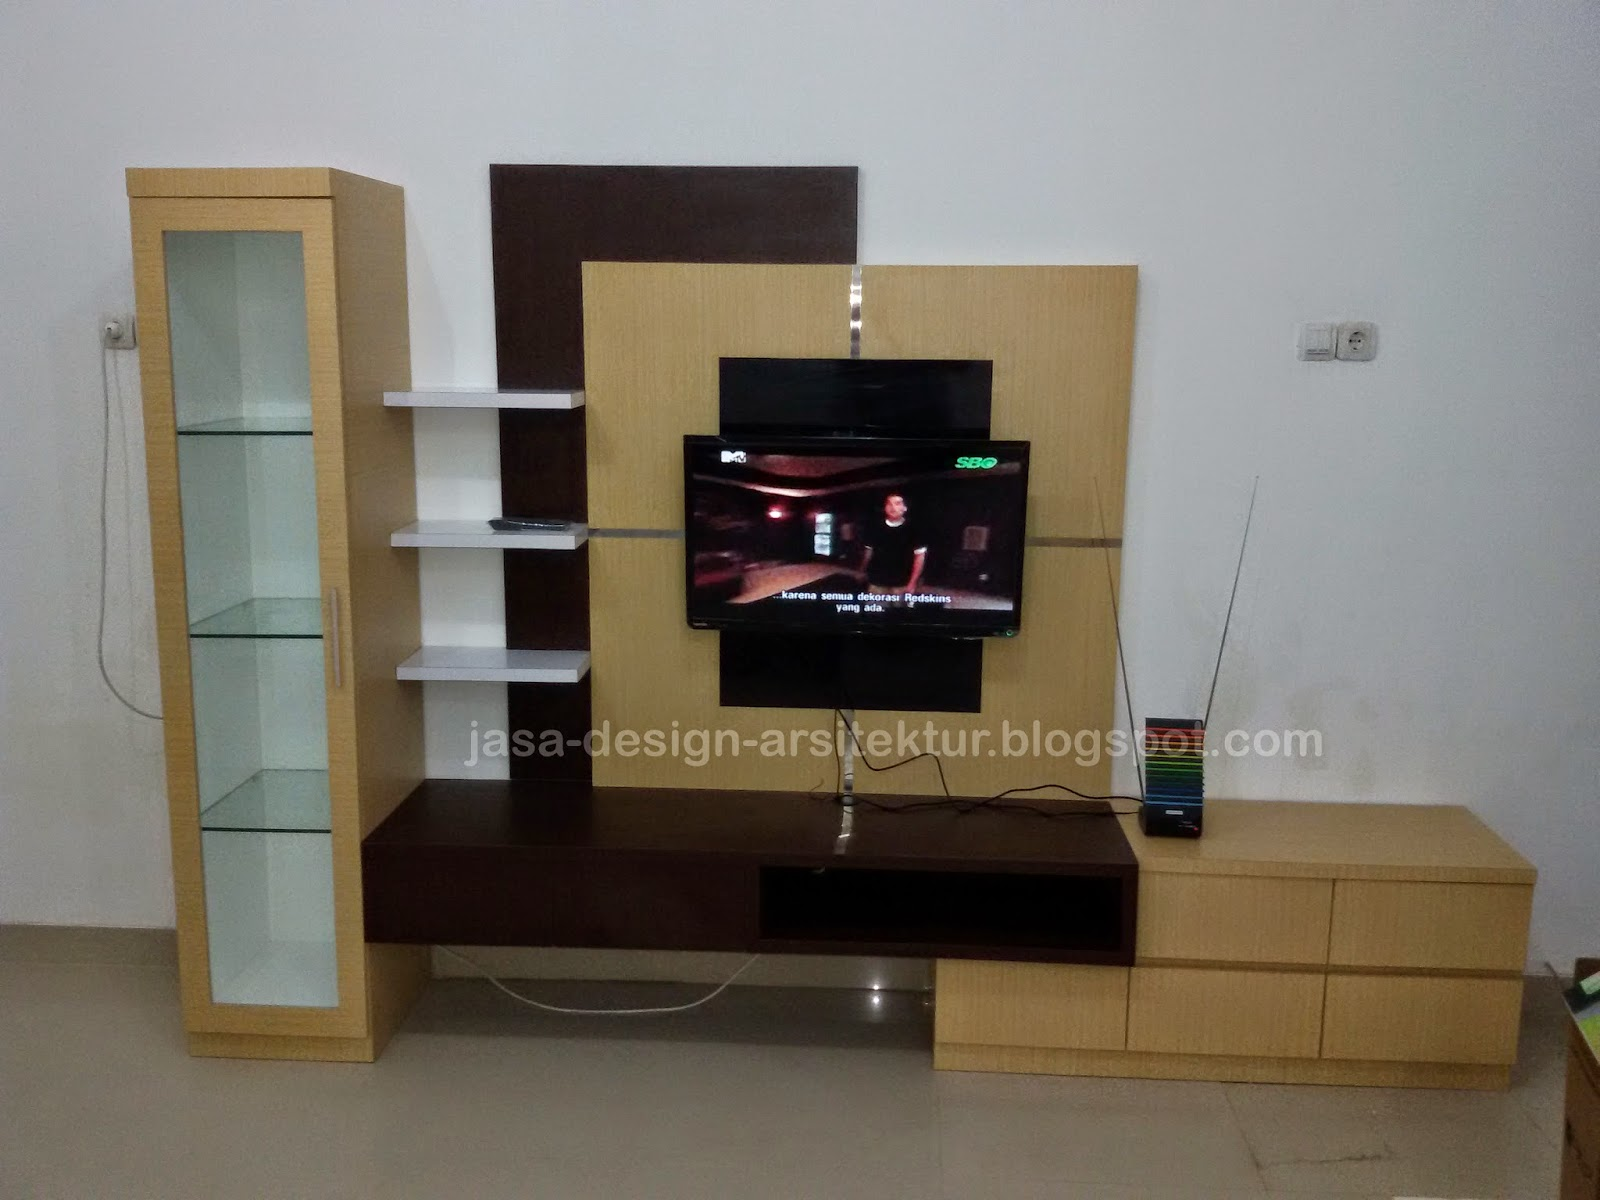 Related to Harga Kitchen Set - Lemari Pakaian Sliding - Rak TV